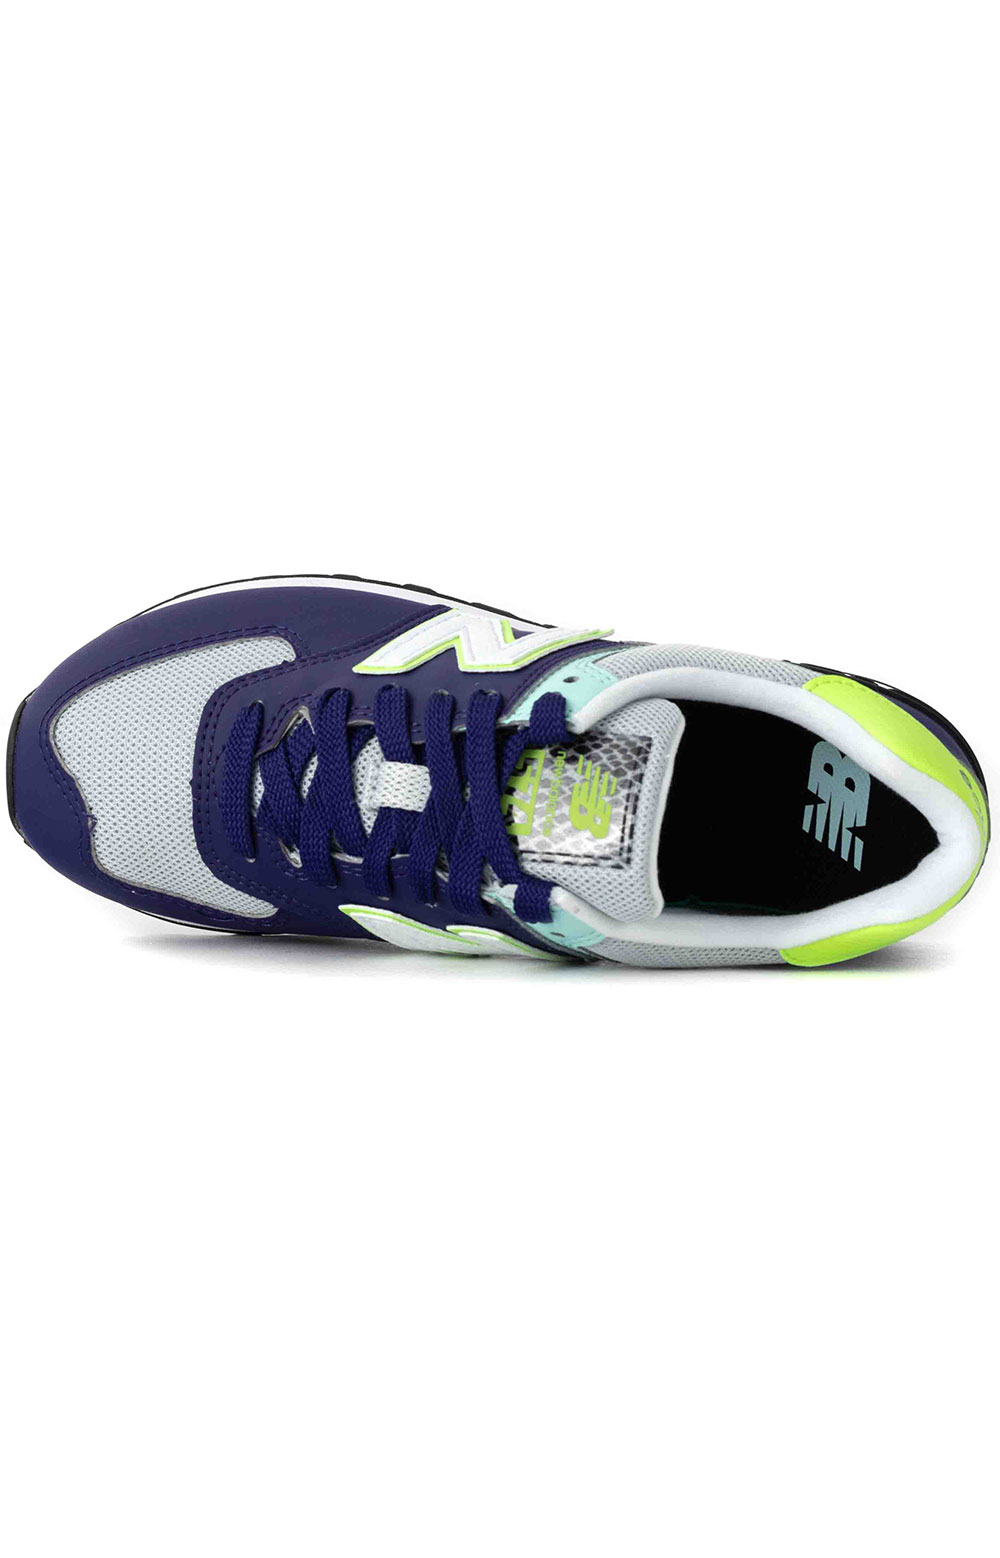 (WL574CT2) WL574 Shoes - Virtual Violet/Bleached Lime Glo 2